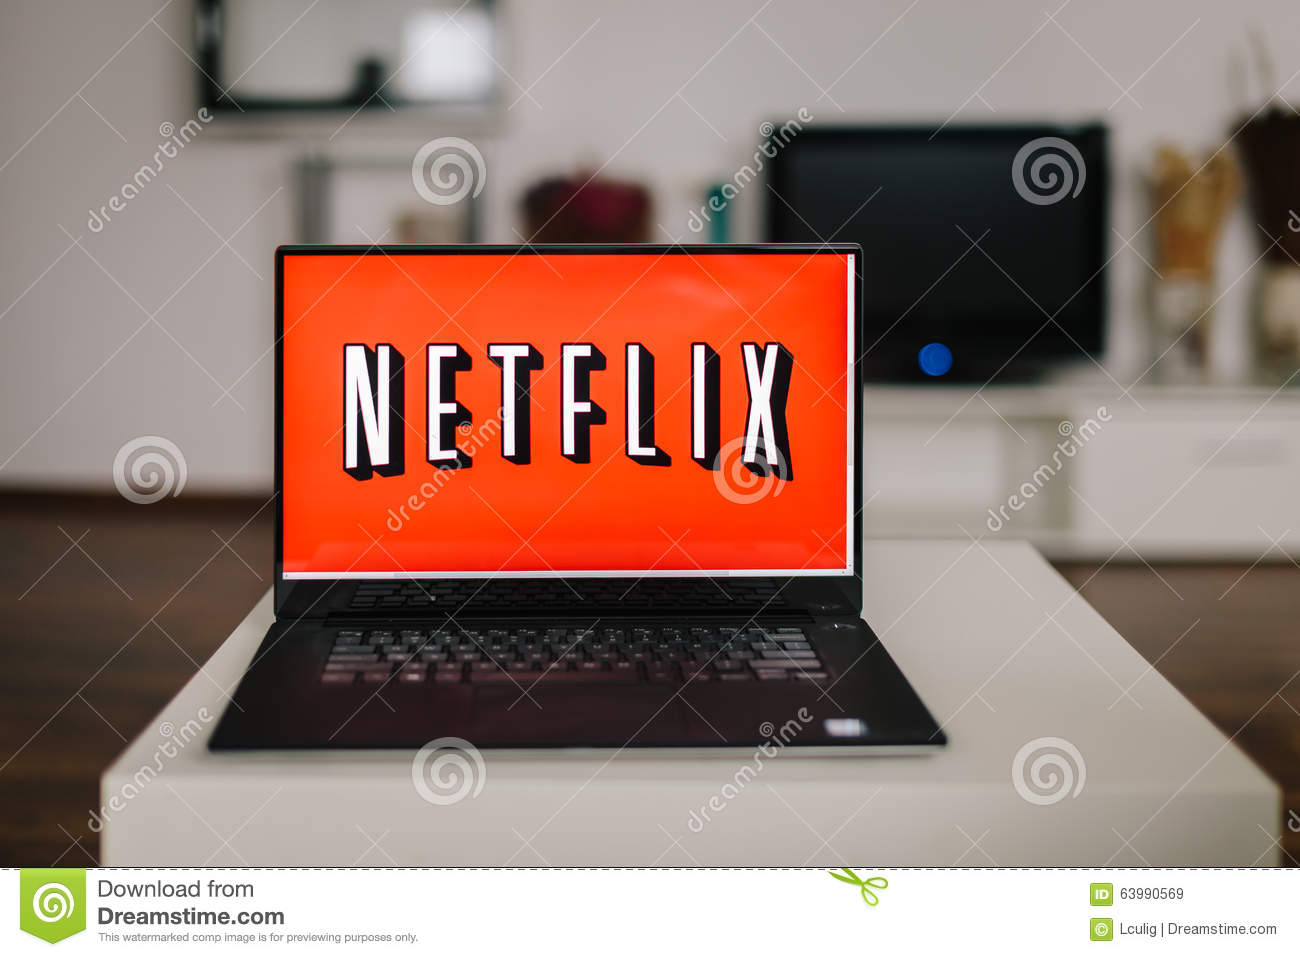 ZAGREB, CROATIA - DECEMBER 20, 2015: Netflix logo on laptop screen. Netflix is an international provider of on-demand Internet str